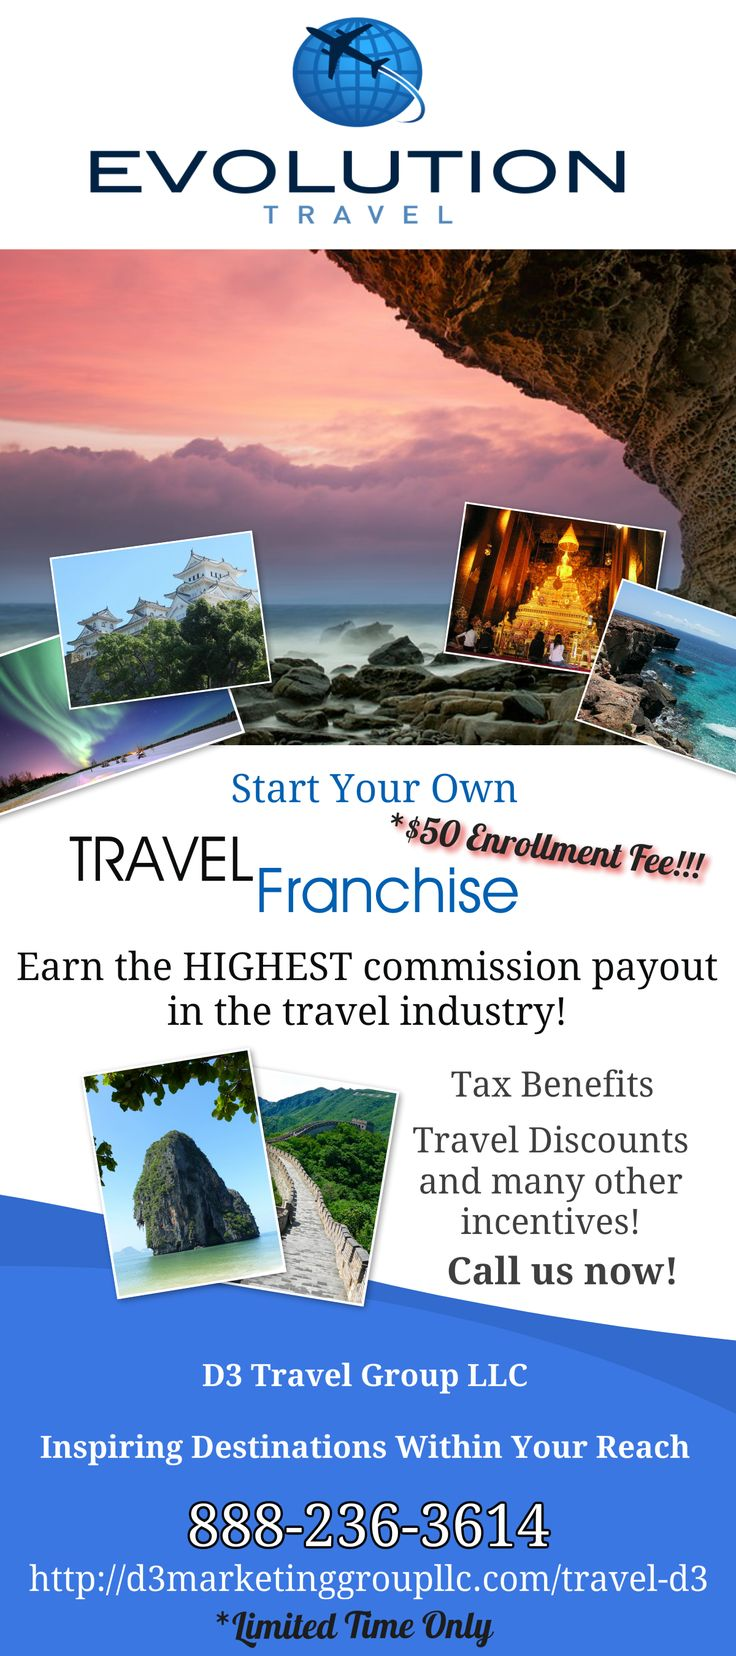 You won't find a commission payout any higher in the travel industry! Let me show you how you can book your family vacation and pay yourself, dine at a discount, get a discount on your car rental, take the family to a ball game or the theater, discuss where you're cruising to for the family reunion, book your cousin's destination wedding AND get VIP Entry & Table & Bottle Service at any Las Vegas Nightclub...all through your own travel franchise!!!